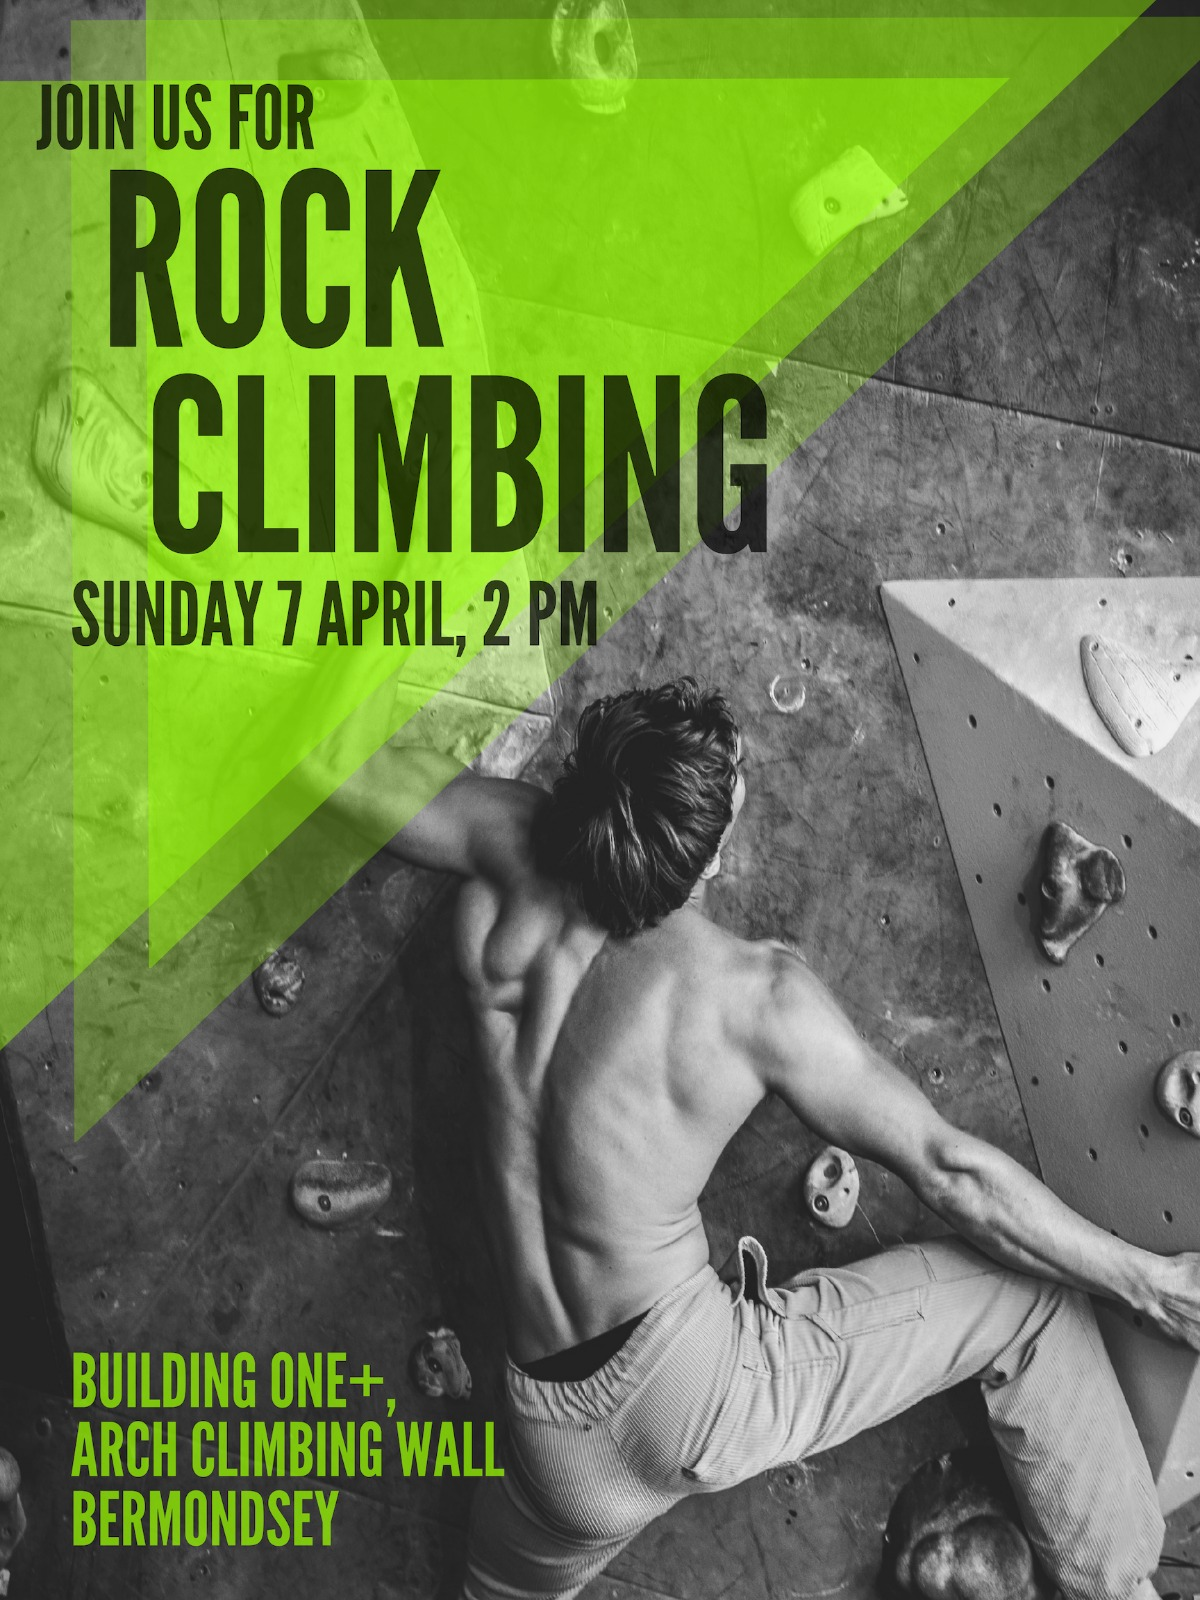 Join us for our next CF1864 Box Social, Rock Climbing! We'll be headed to Building One+ in Bermondsey on Sunday 7 April at 2 pm. See you all there!